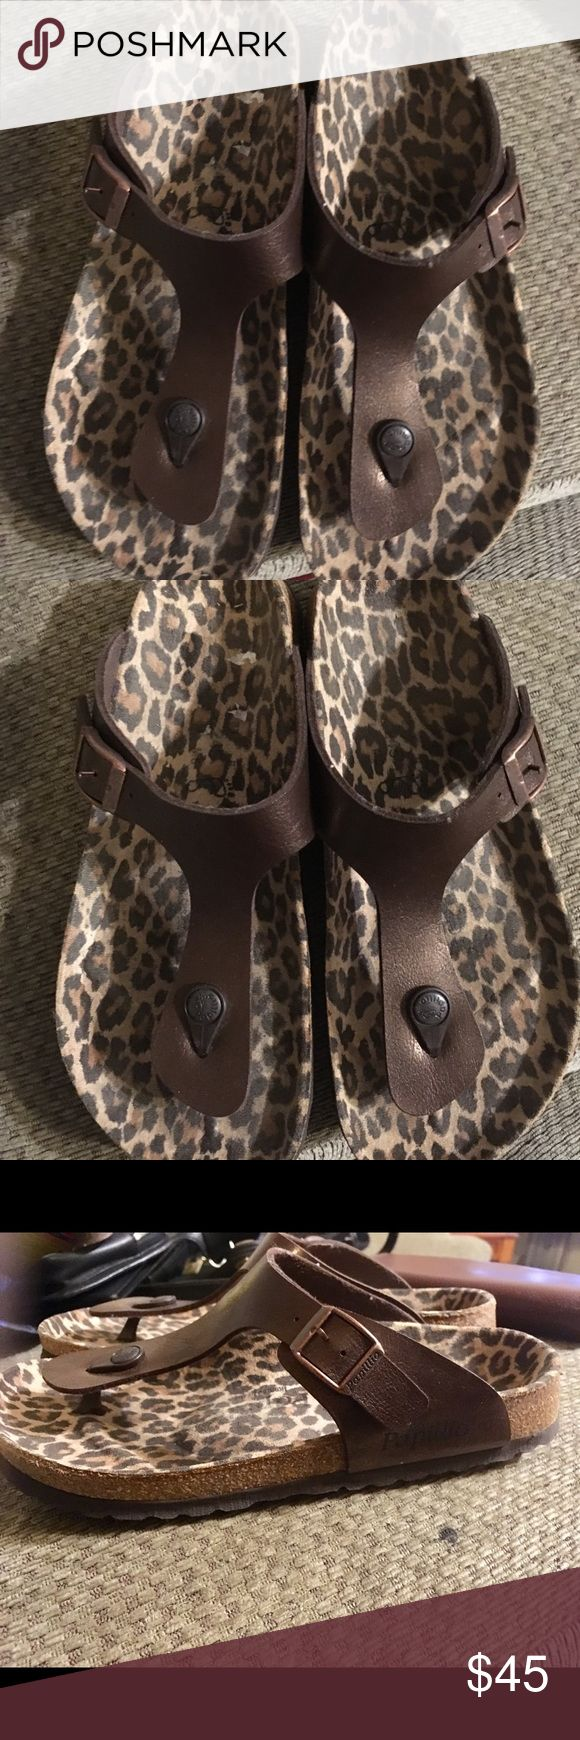 Birkenstock Papillio Gizeh Leather Sandals Size 7 Here is a Birkenstock Papillio Gizeh Leather Sandals Size 7. It is in excellent preowned condition Birkenstock Shoes Sandals